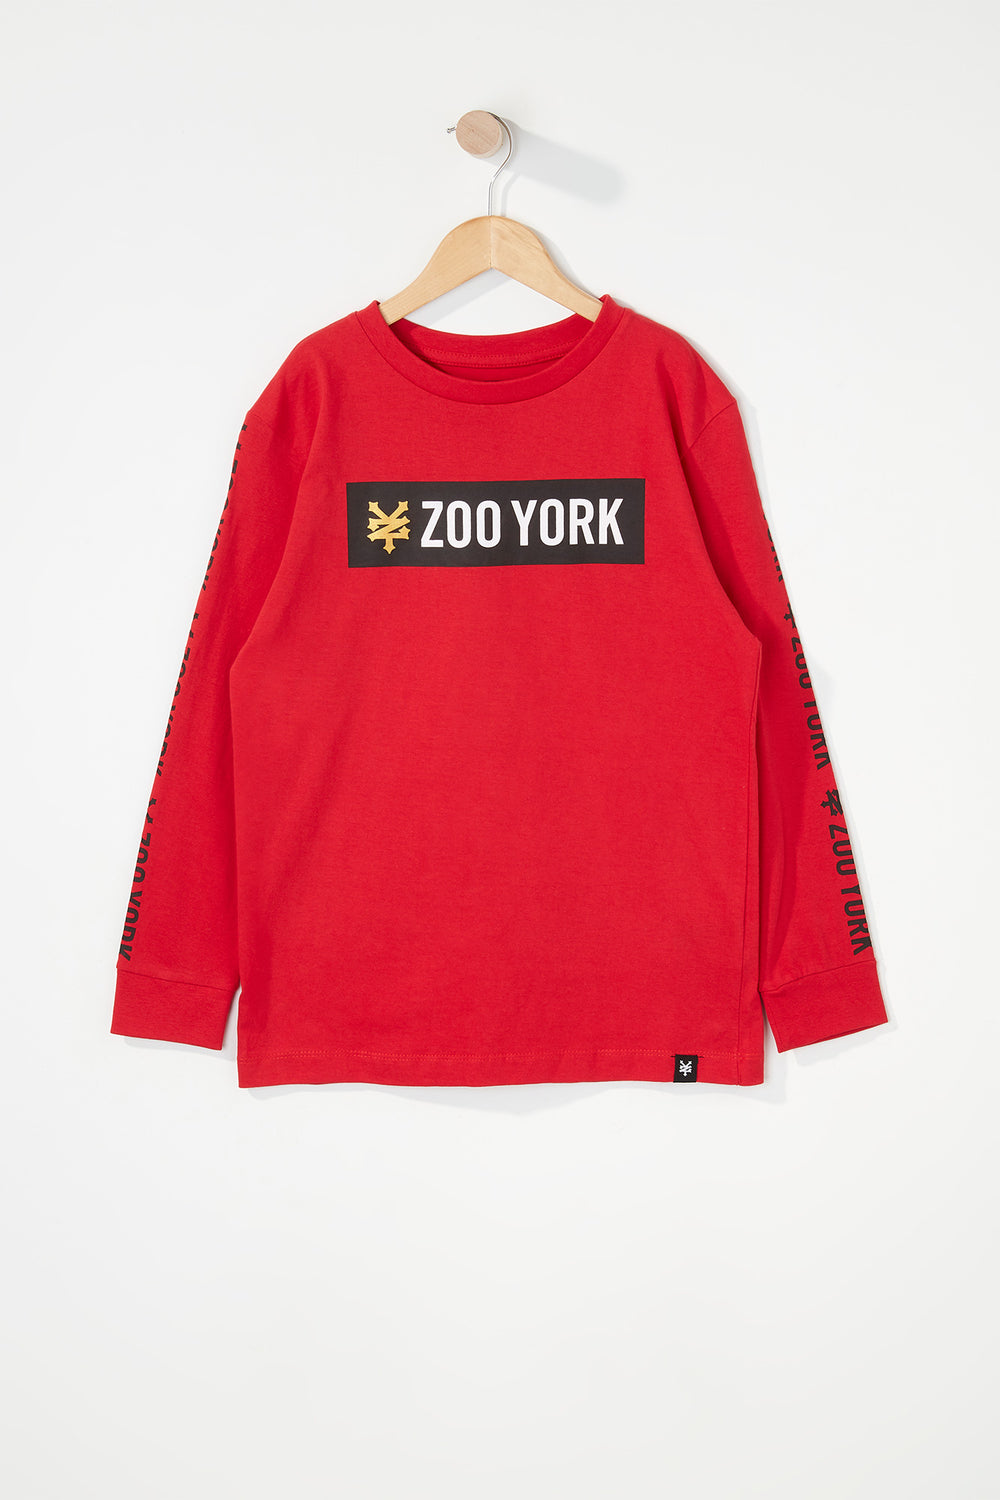 Zoo York Boys Classic Logo Long Sleeve Shirt Red